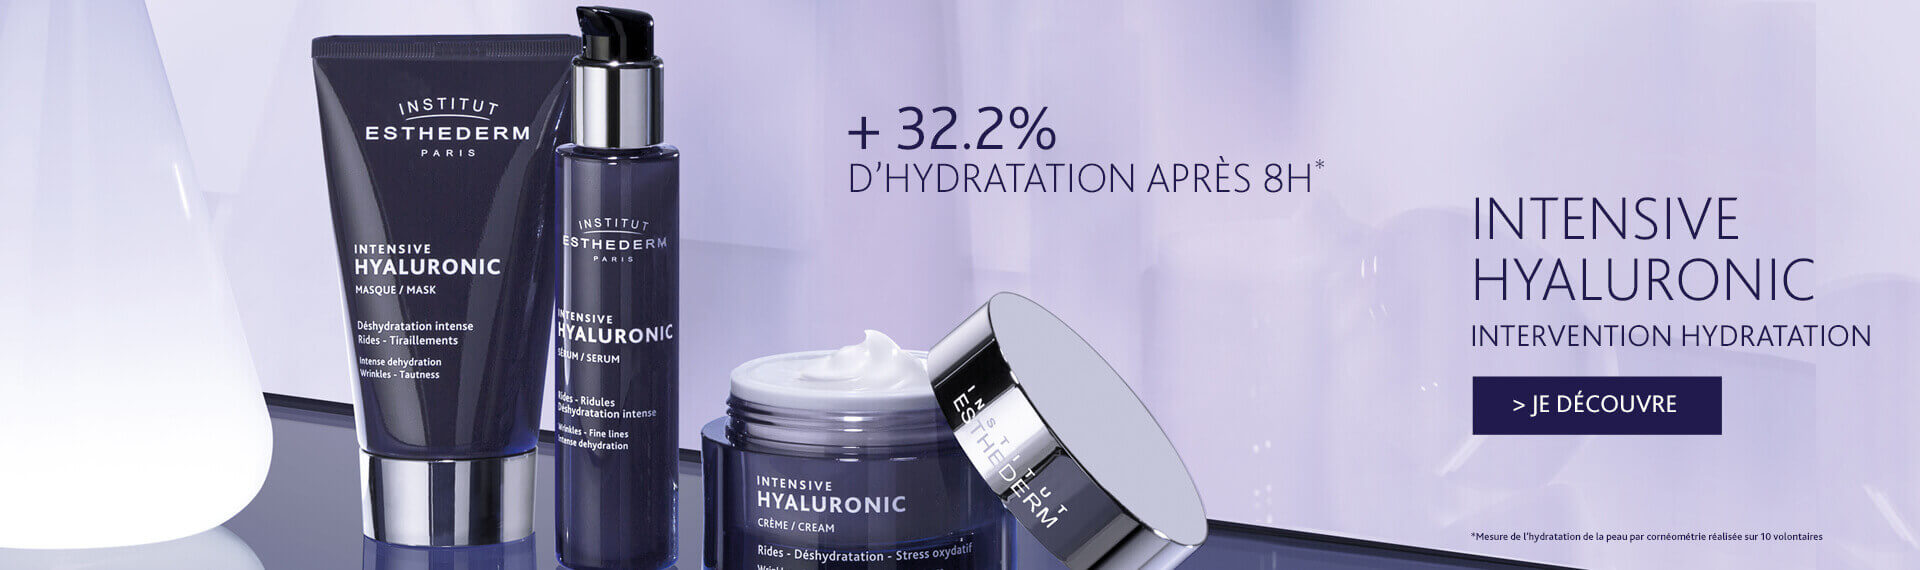 Intensive hyaluronic - intervention hydratation